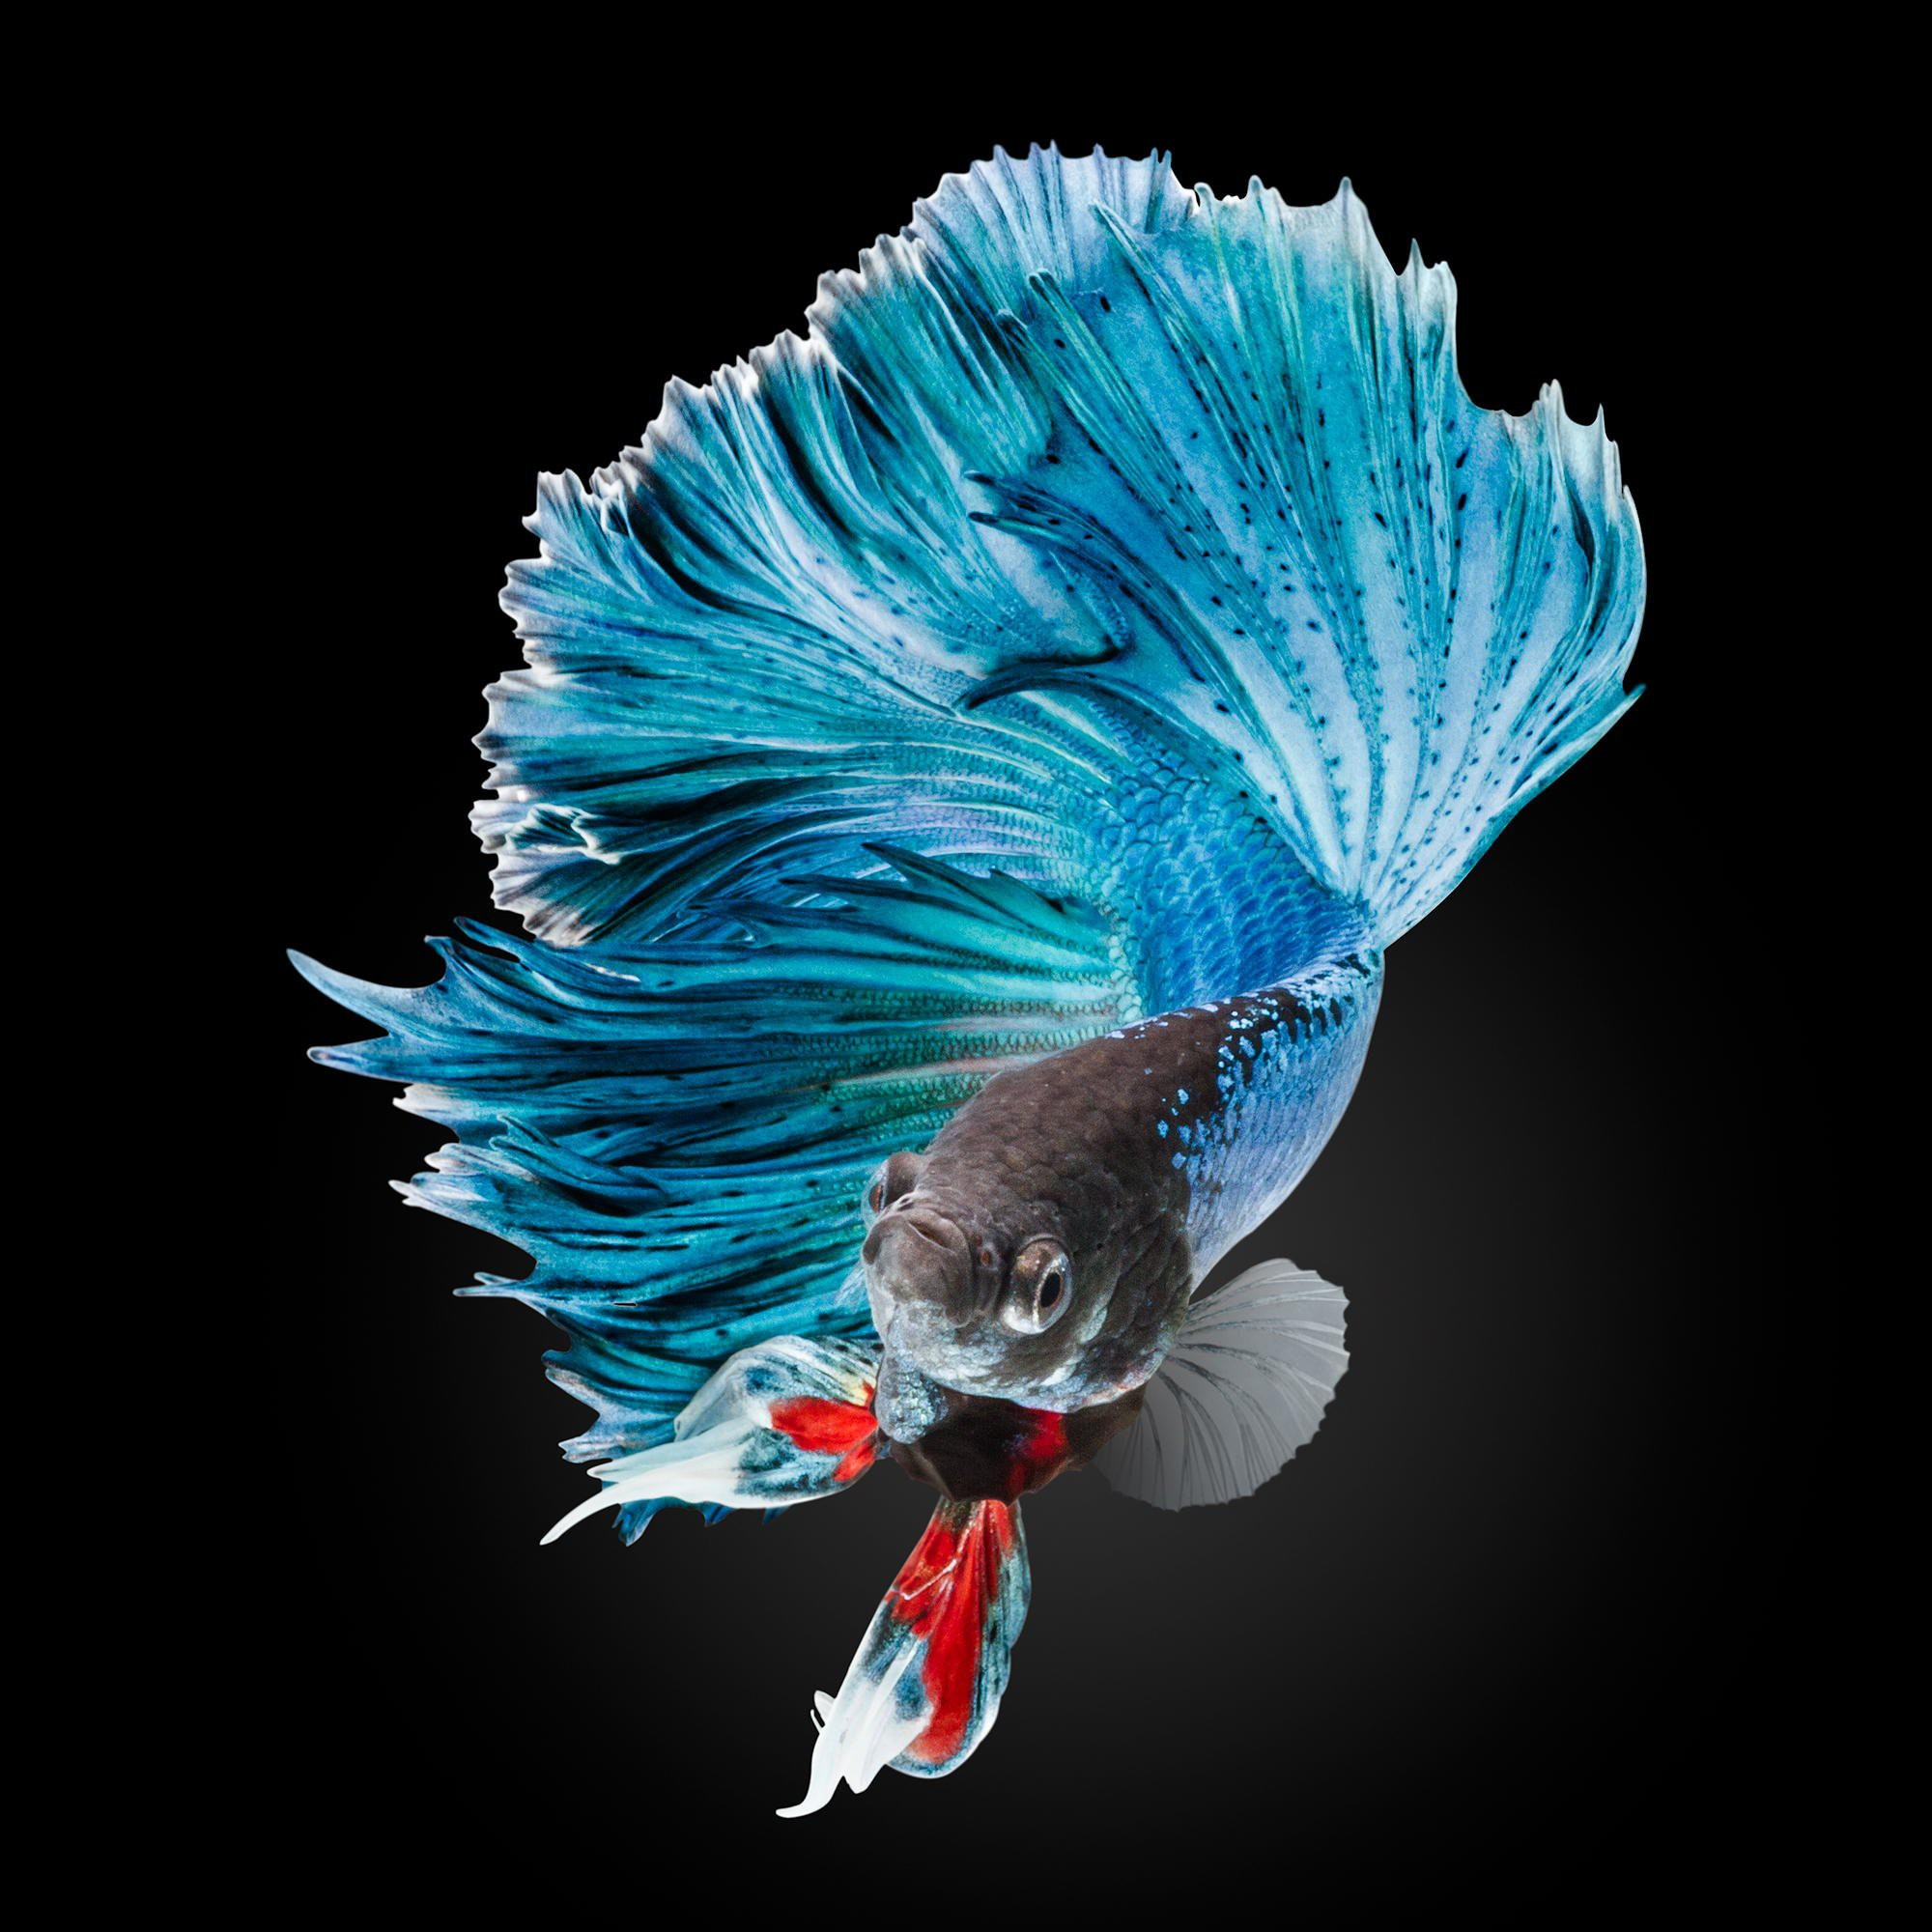 Betta Fish Hd Wallpapers Desktop Computer Download 2000x2000